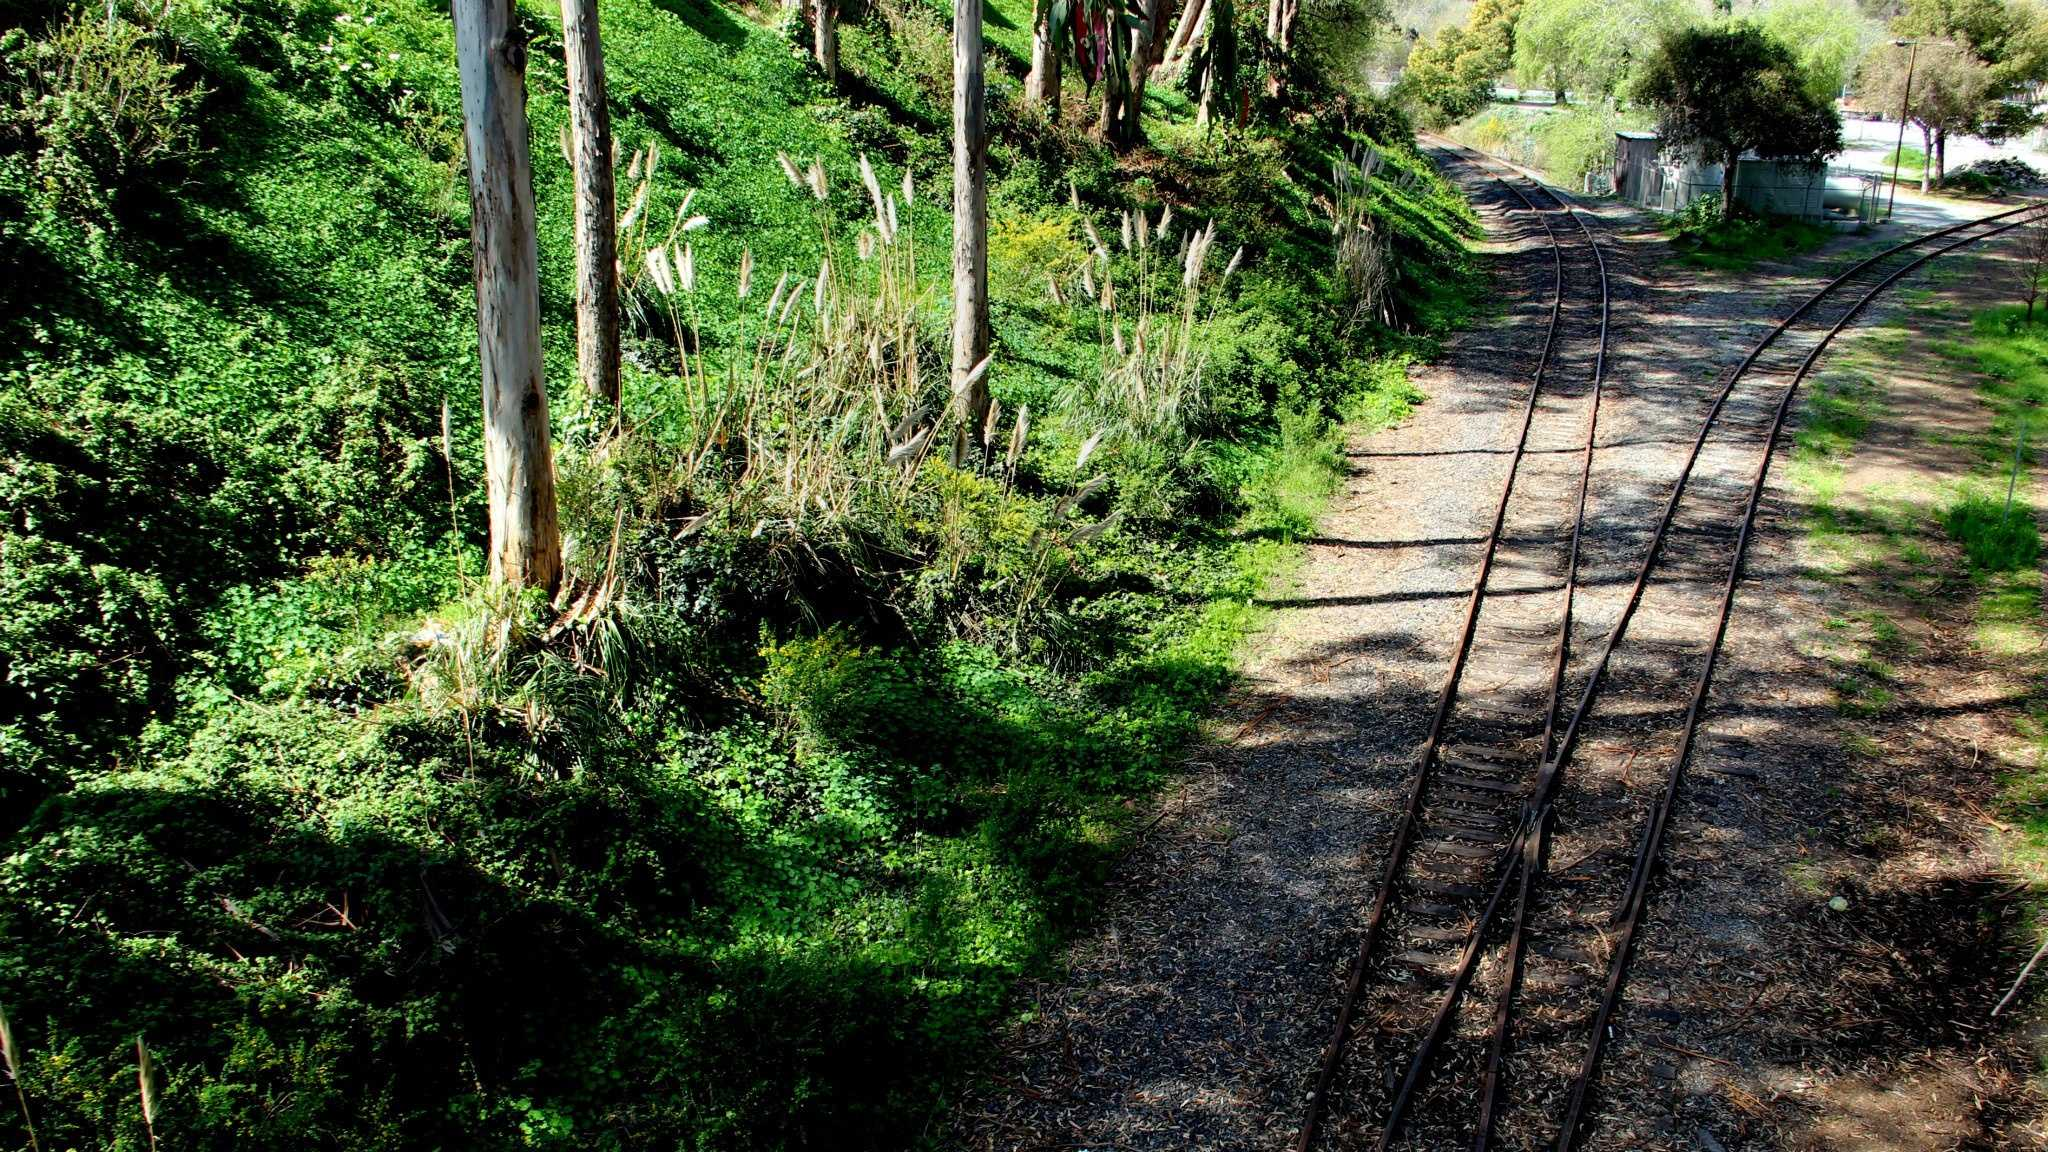 Charles Powers was stoned and killed with a skateboard along these train tracks in Santa Cruz.